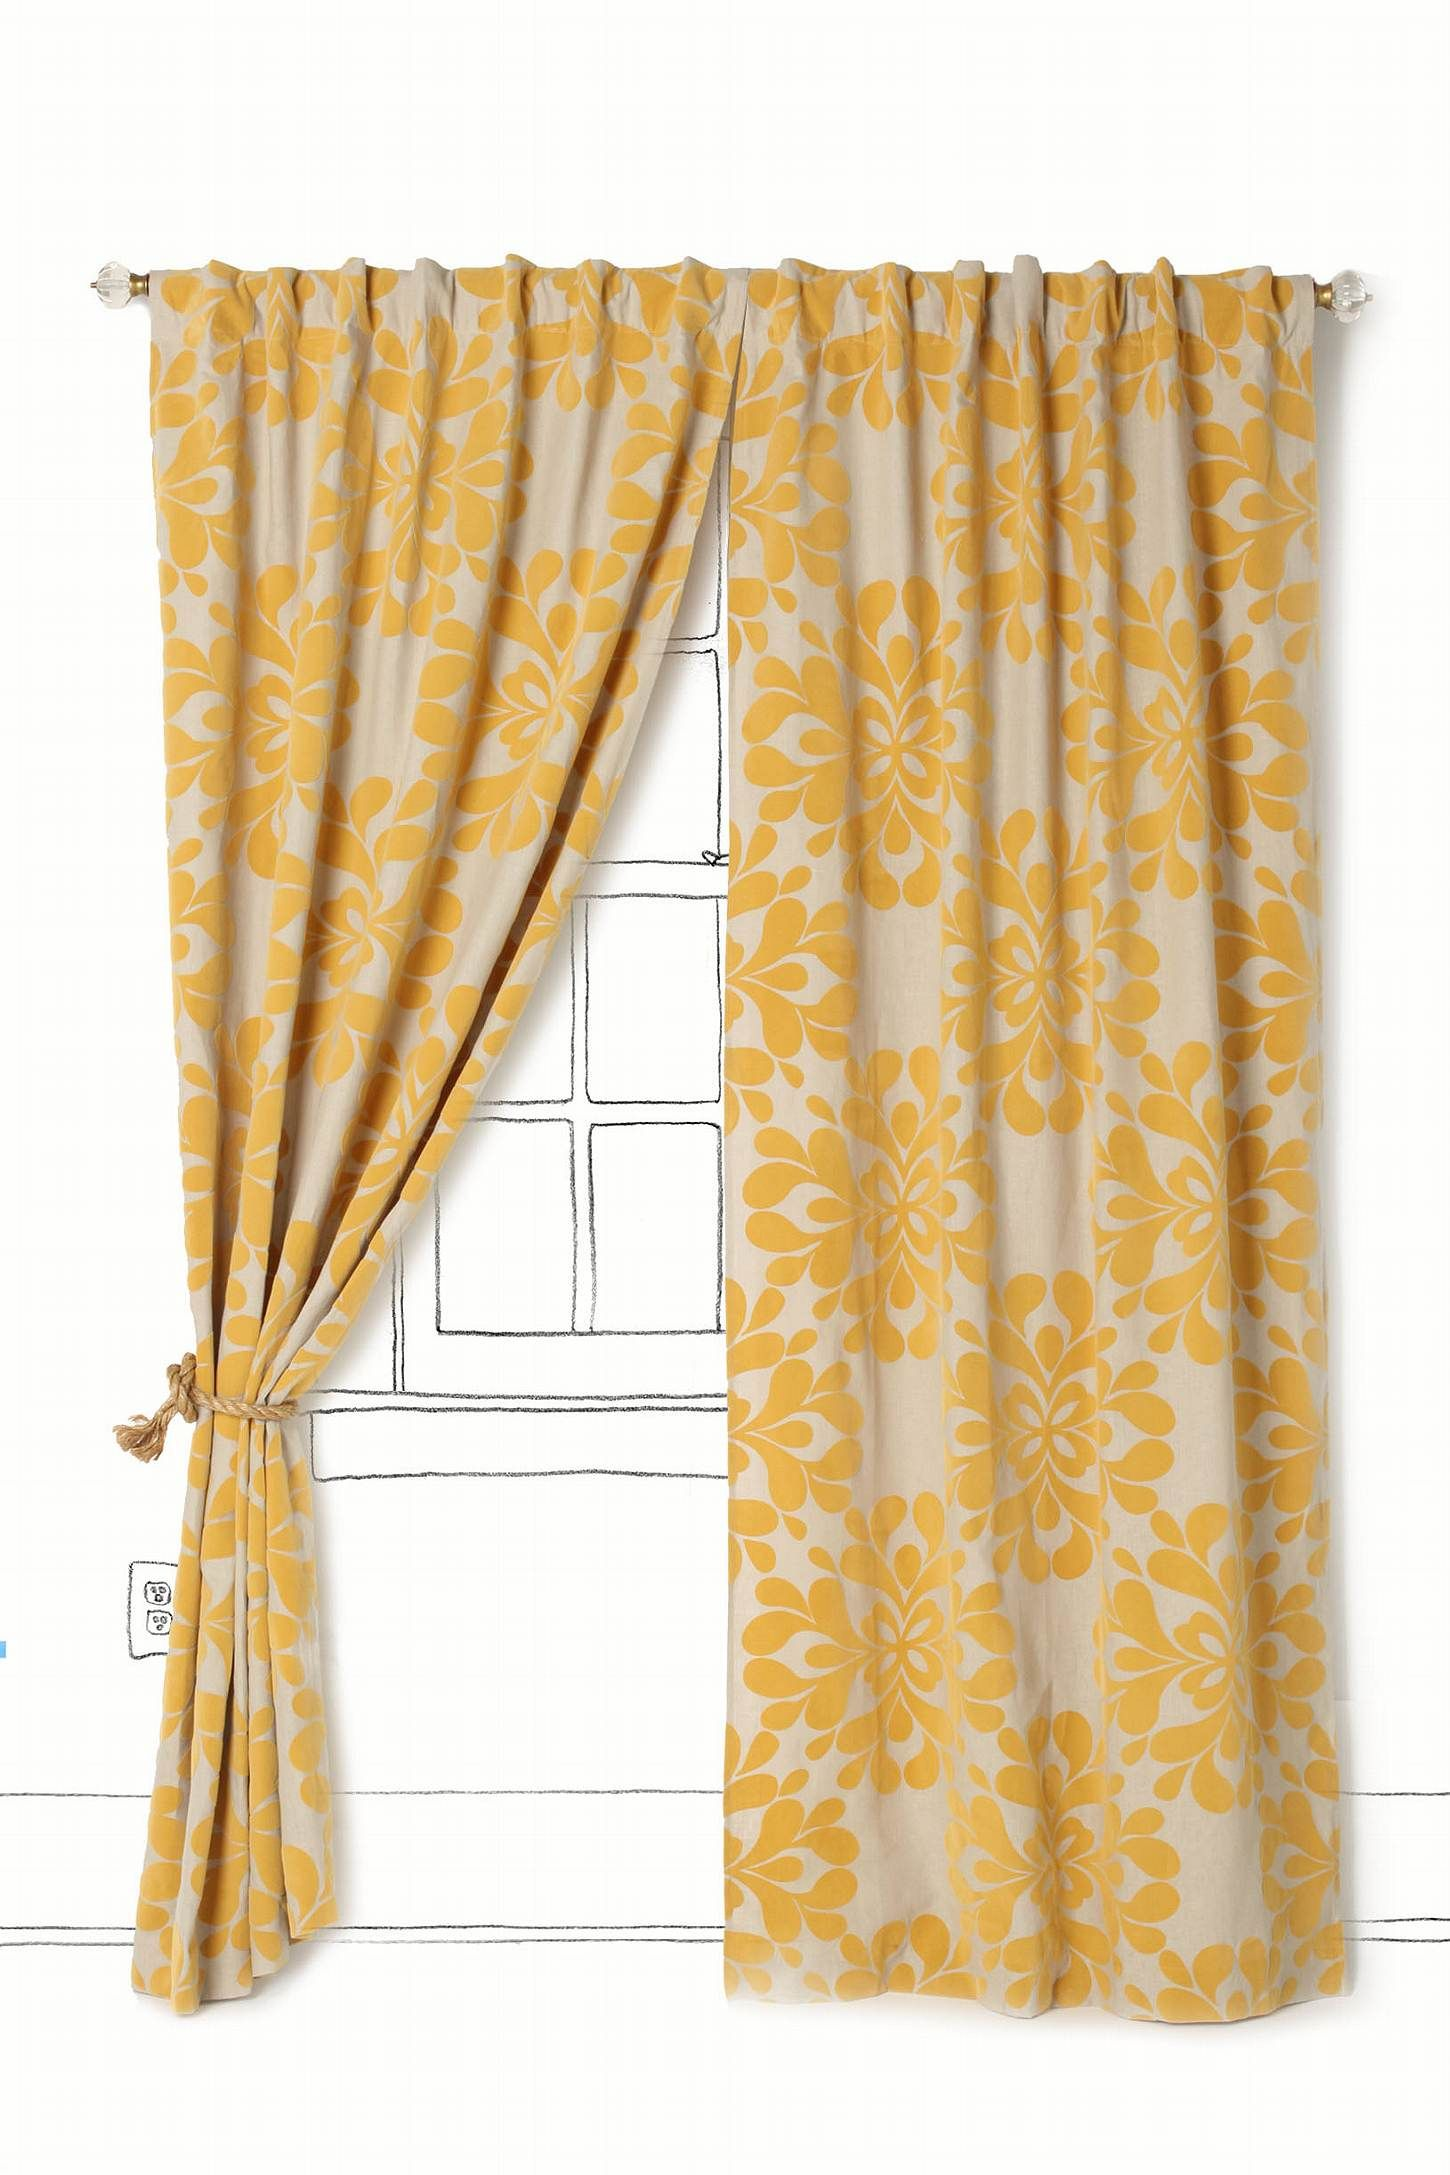 Kitchen Curtains For Yellow Walls Coqo Floral Curtain Quotsew Cute Quot And Other Flings With